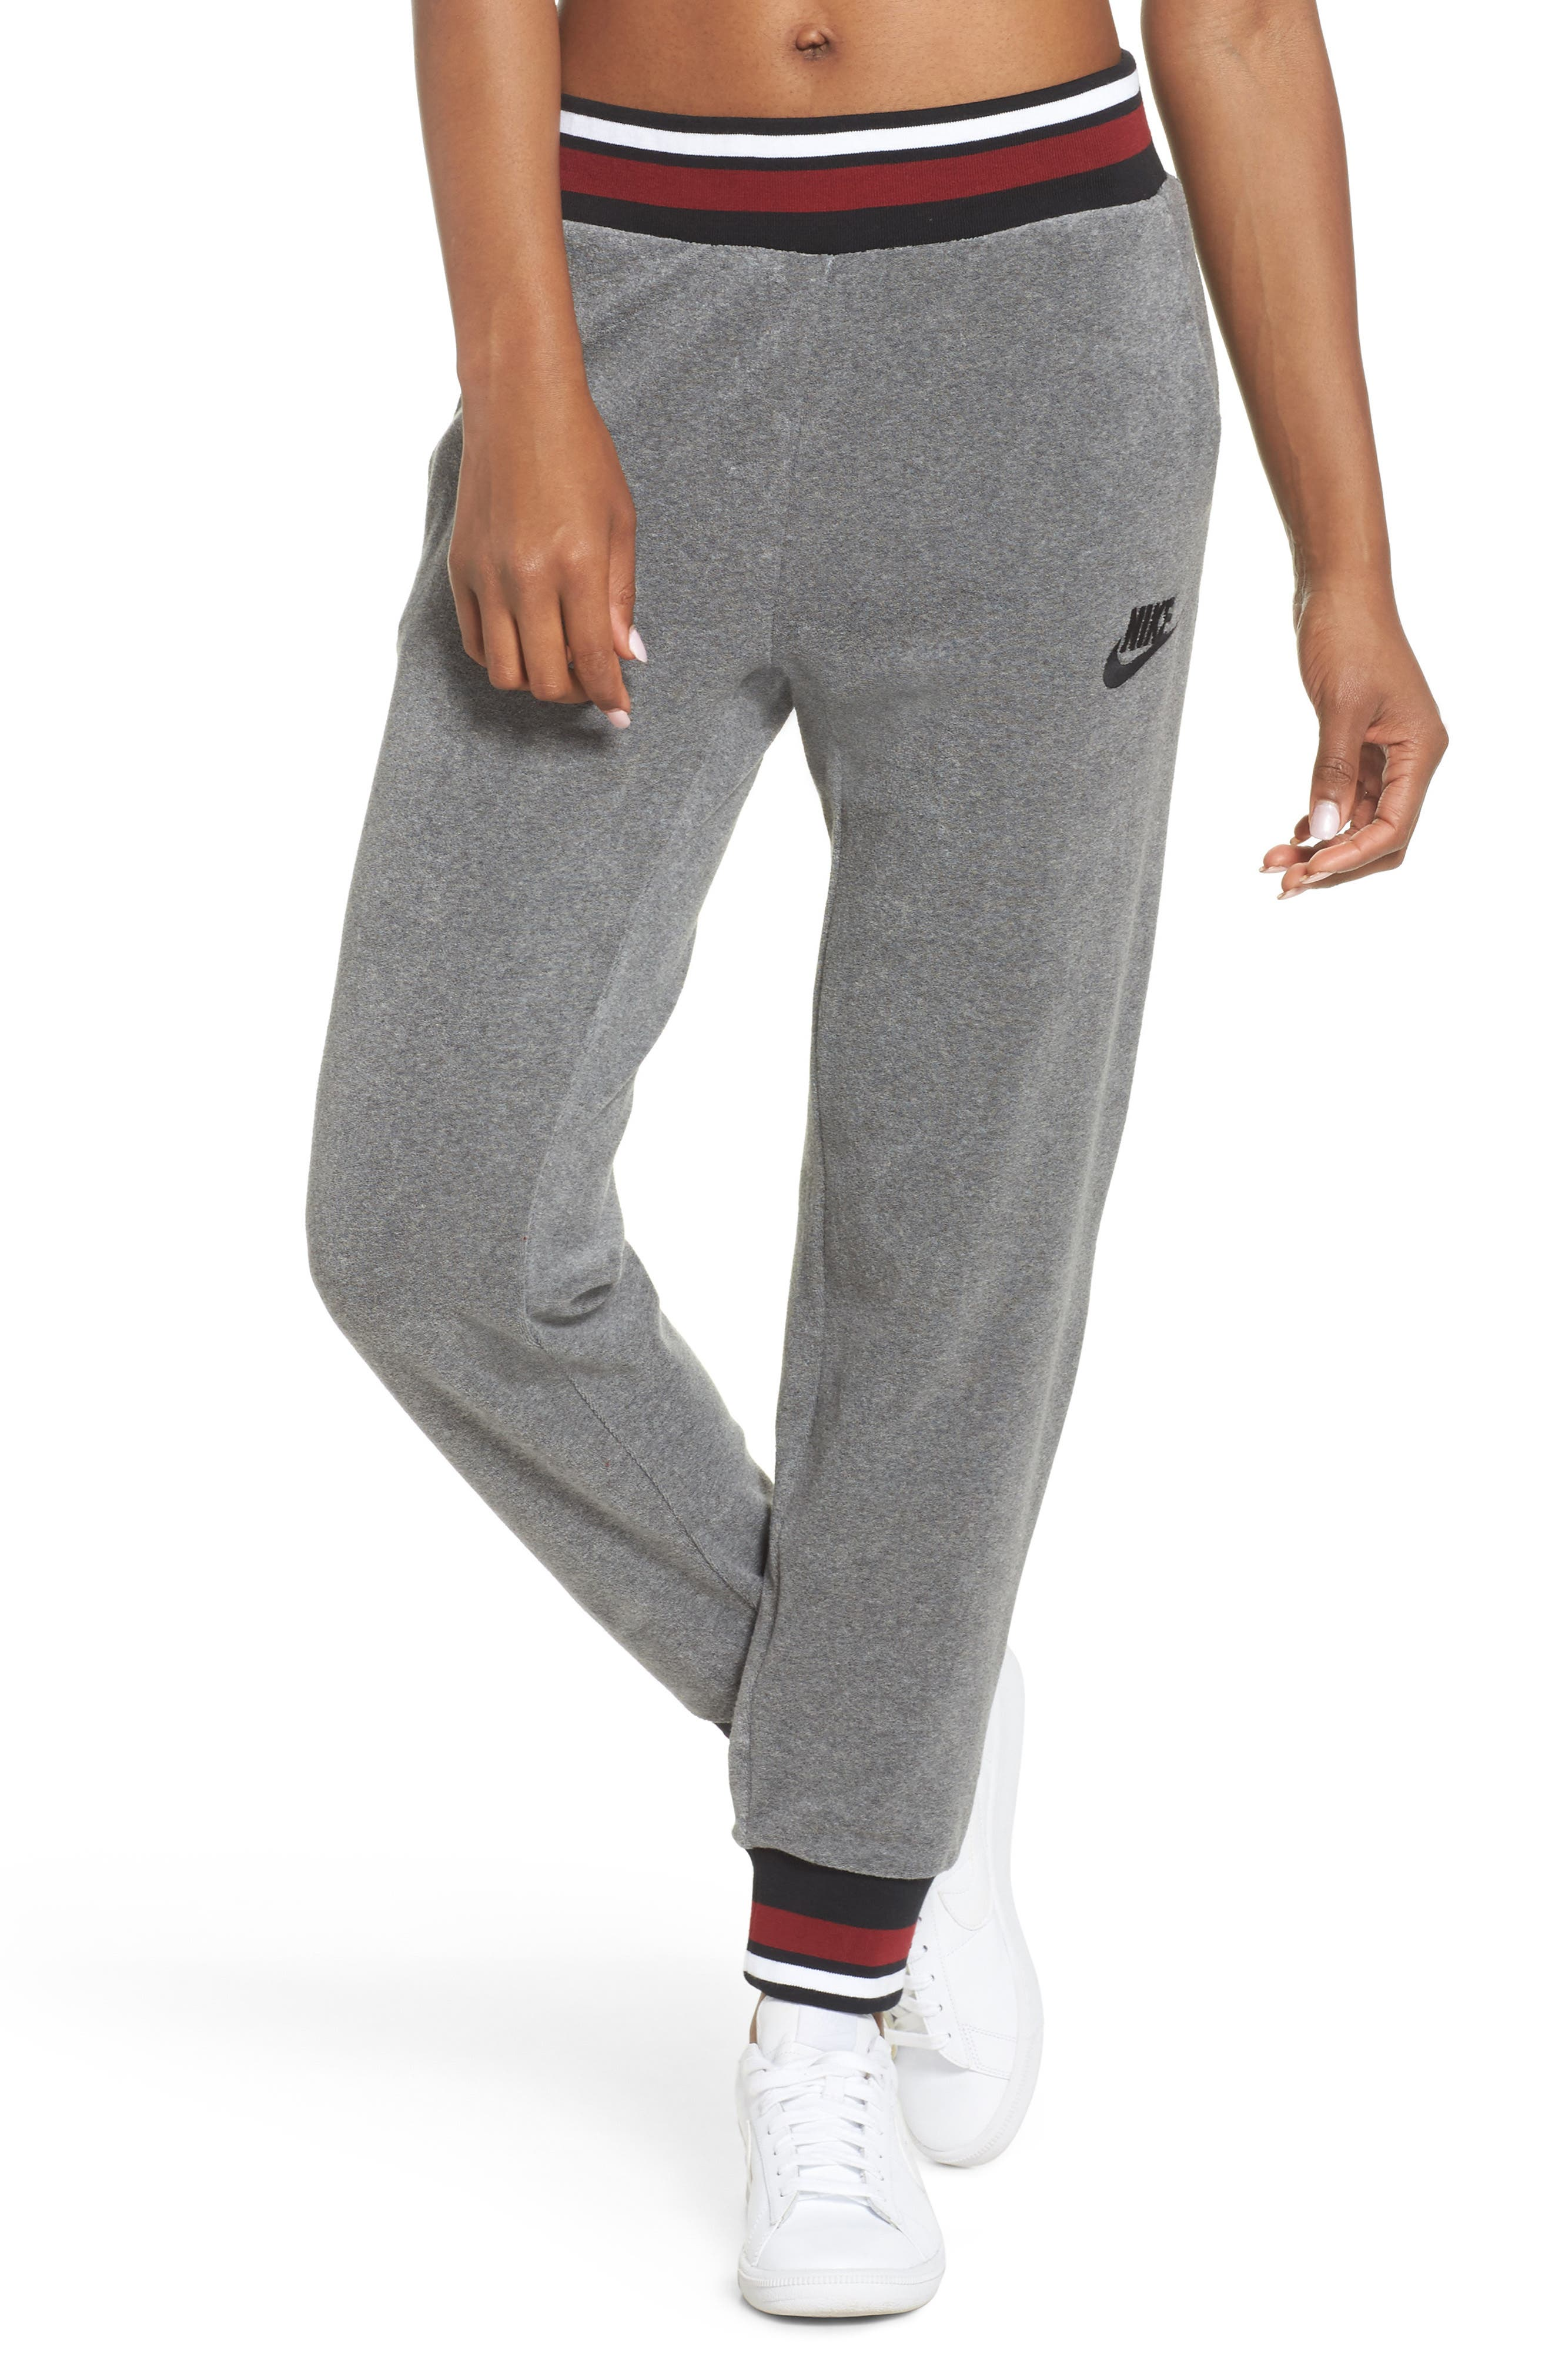 Sportswear French Terry Pants,                             Main thumbnail 1, color,                             Carbon Heather/ Team Red